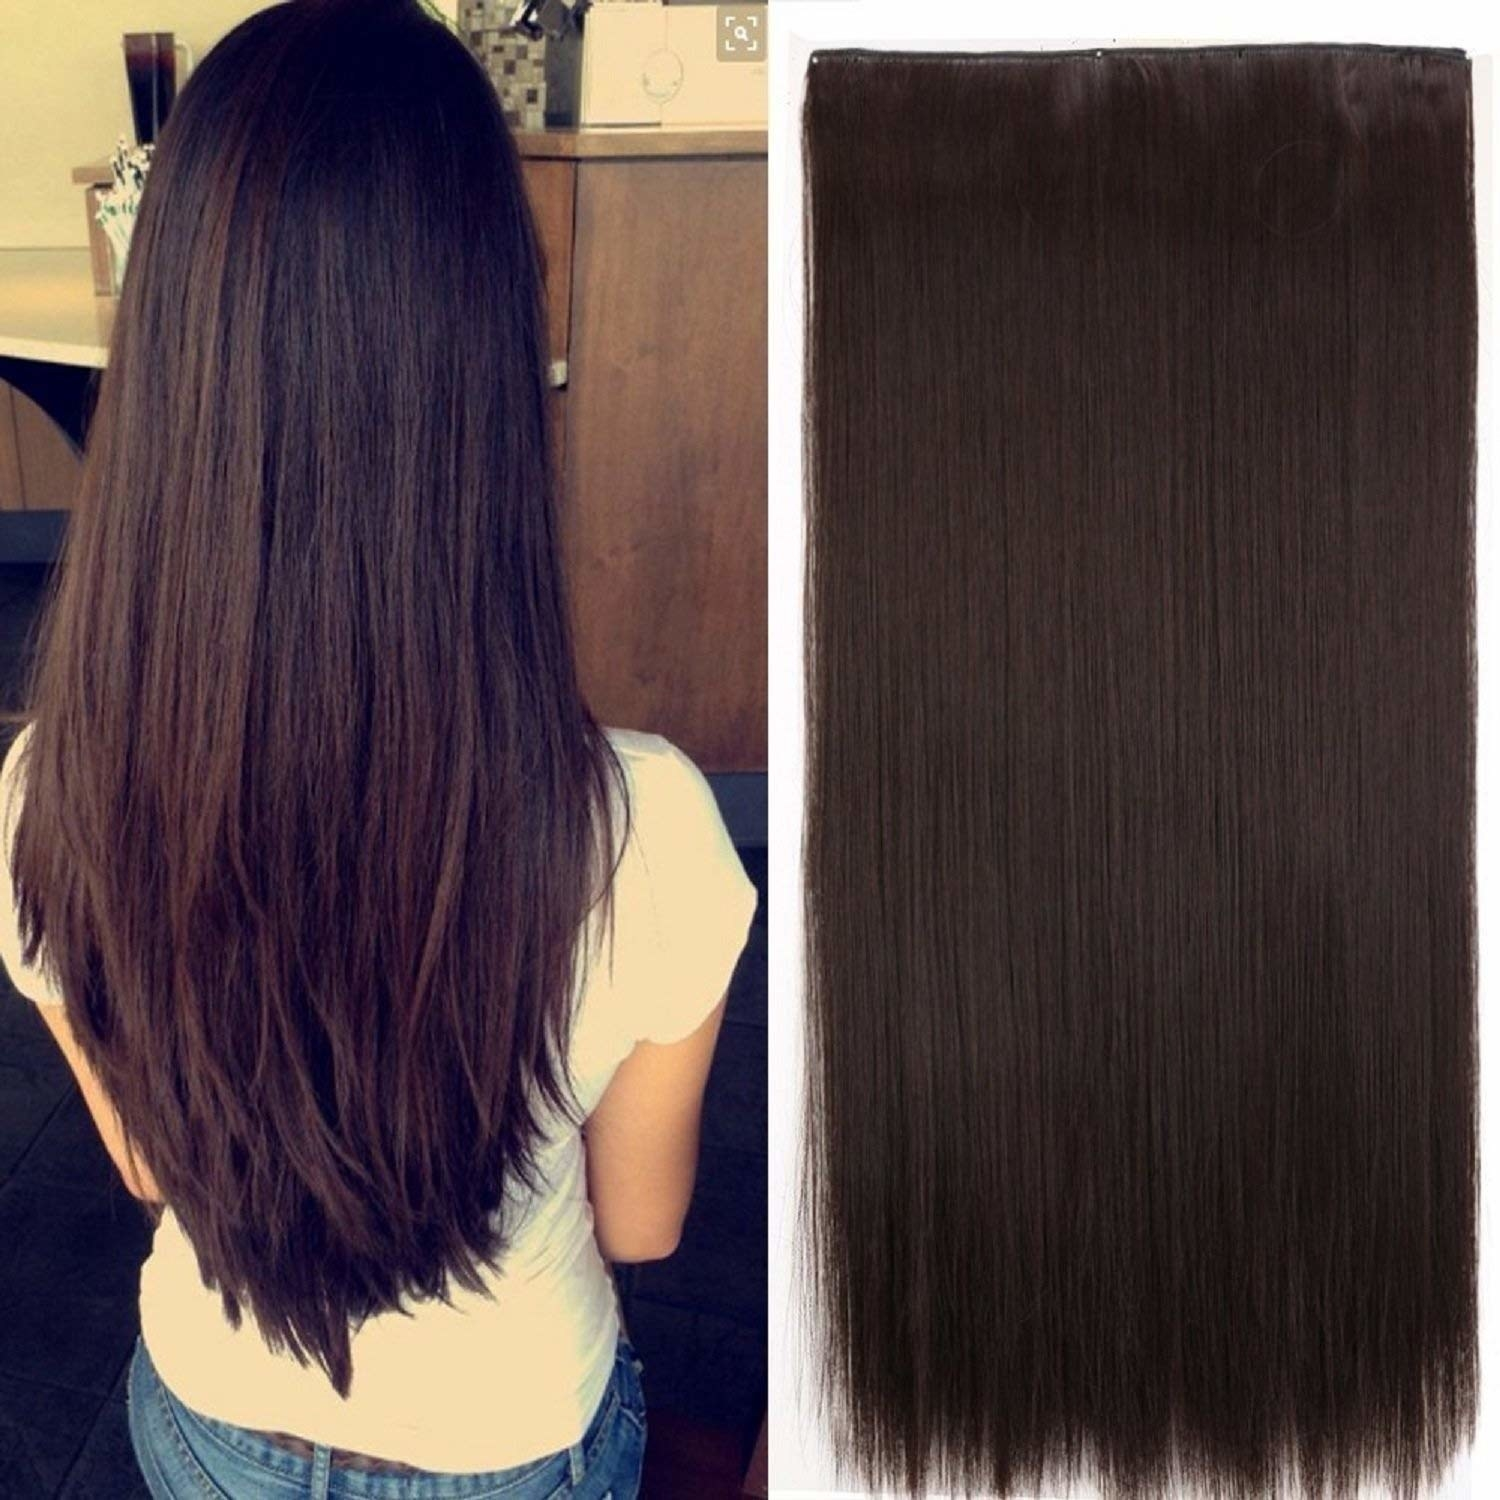 Image showing a person's hair with extensions put on, and the extensions itself side by side.